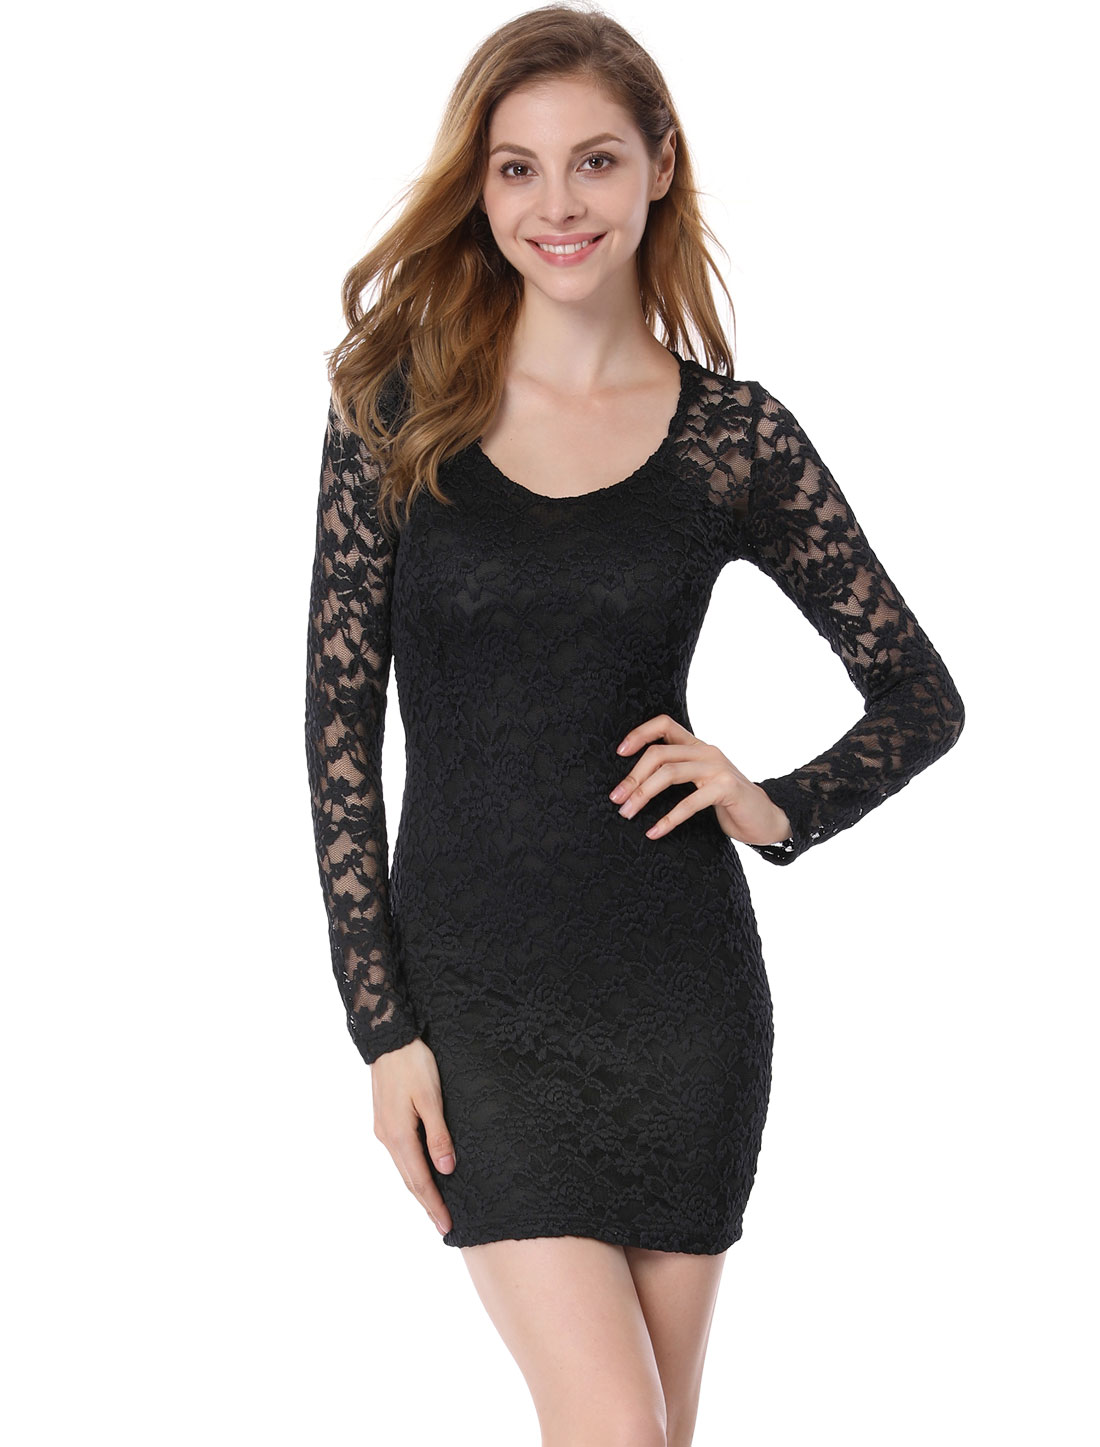 Slim Fit All Over Crochet Lace Black Mini Dress for Lady M